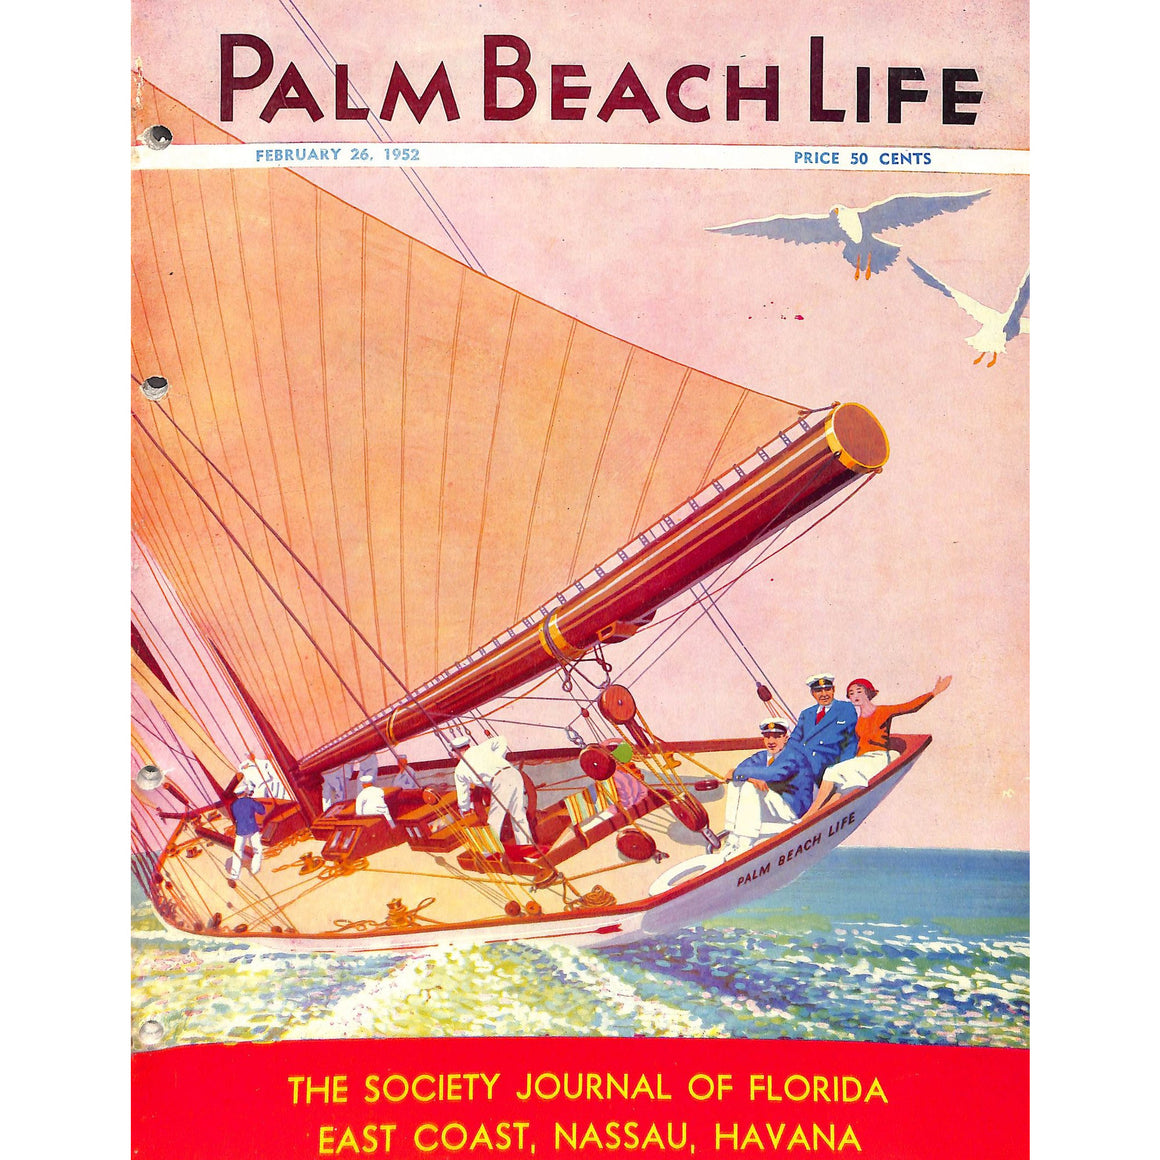 Palm Beach Life: The Society Journal of Florida East Coast, Nassau, Havana February 26, 1952